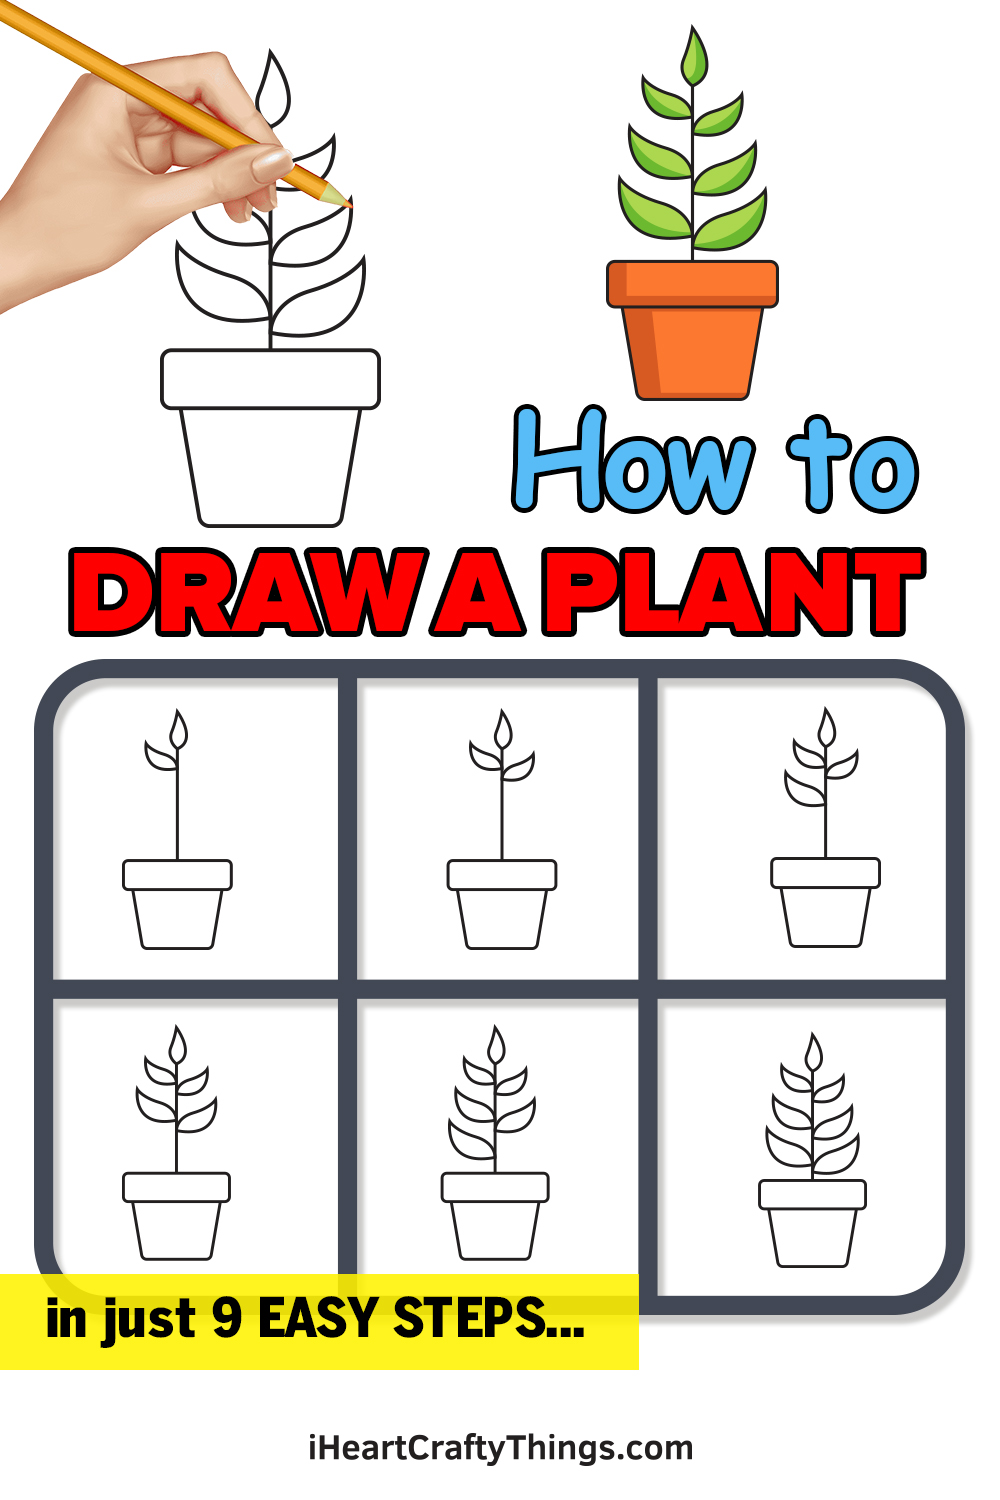 How to Draw a Plant in 9 Easy Steps